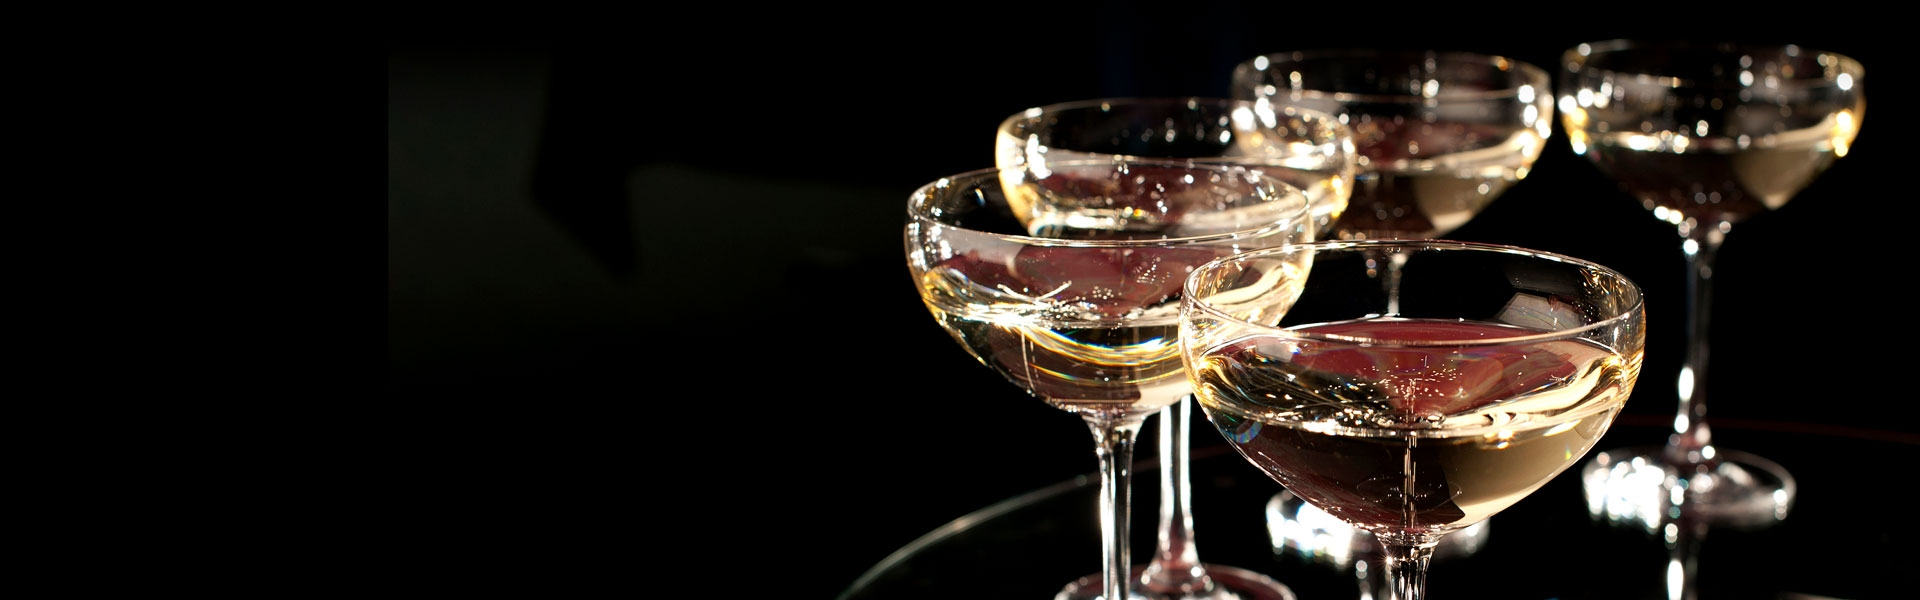 Grab Glasses to Toast the New Year!